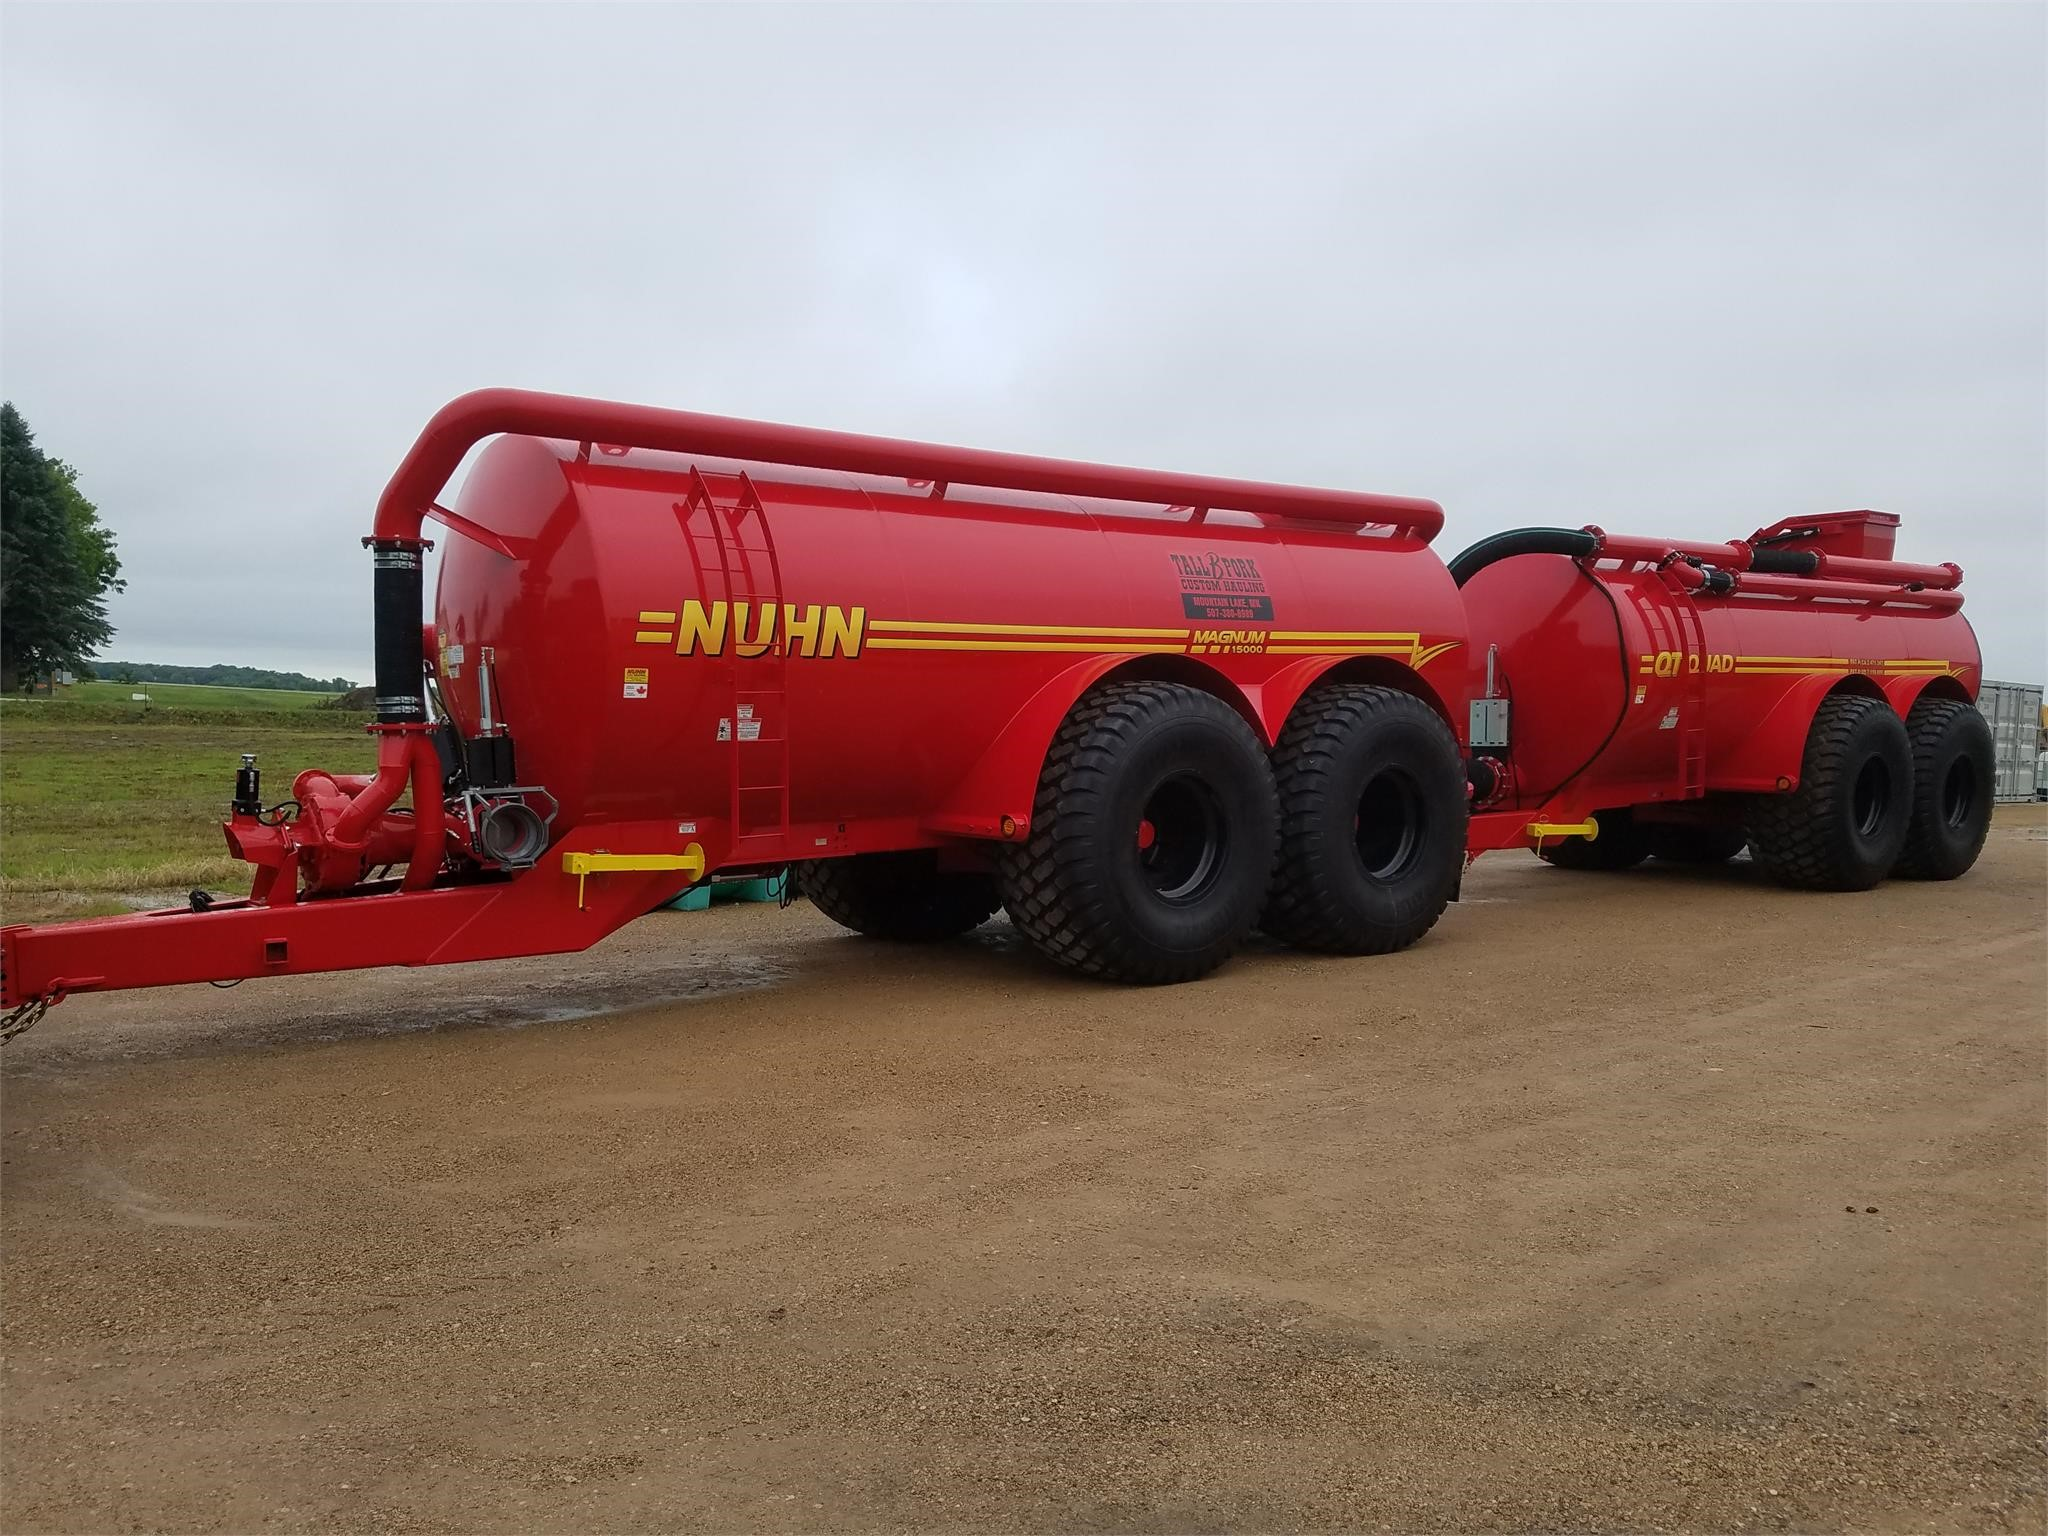 Nuhn Quad Train Manure Spreader